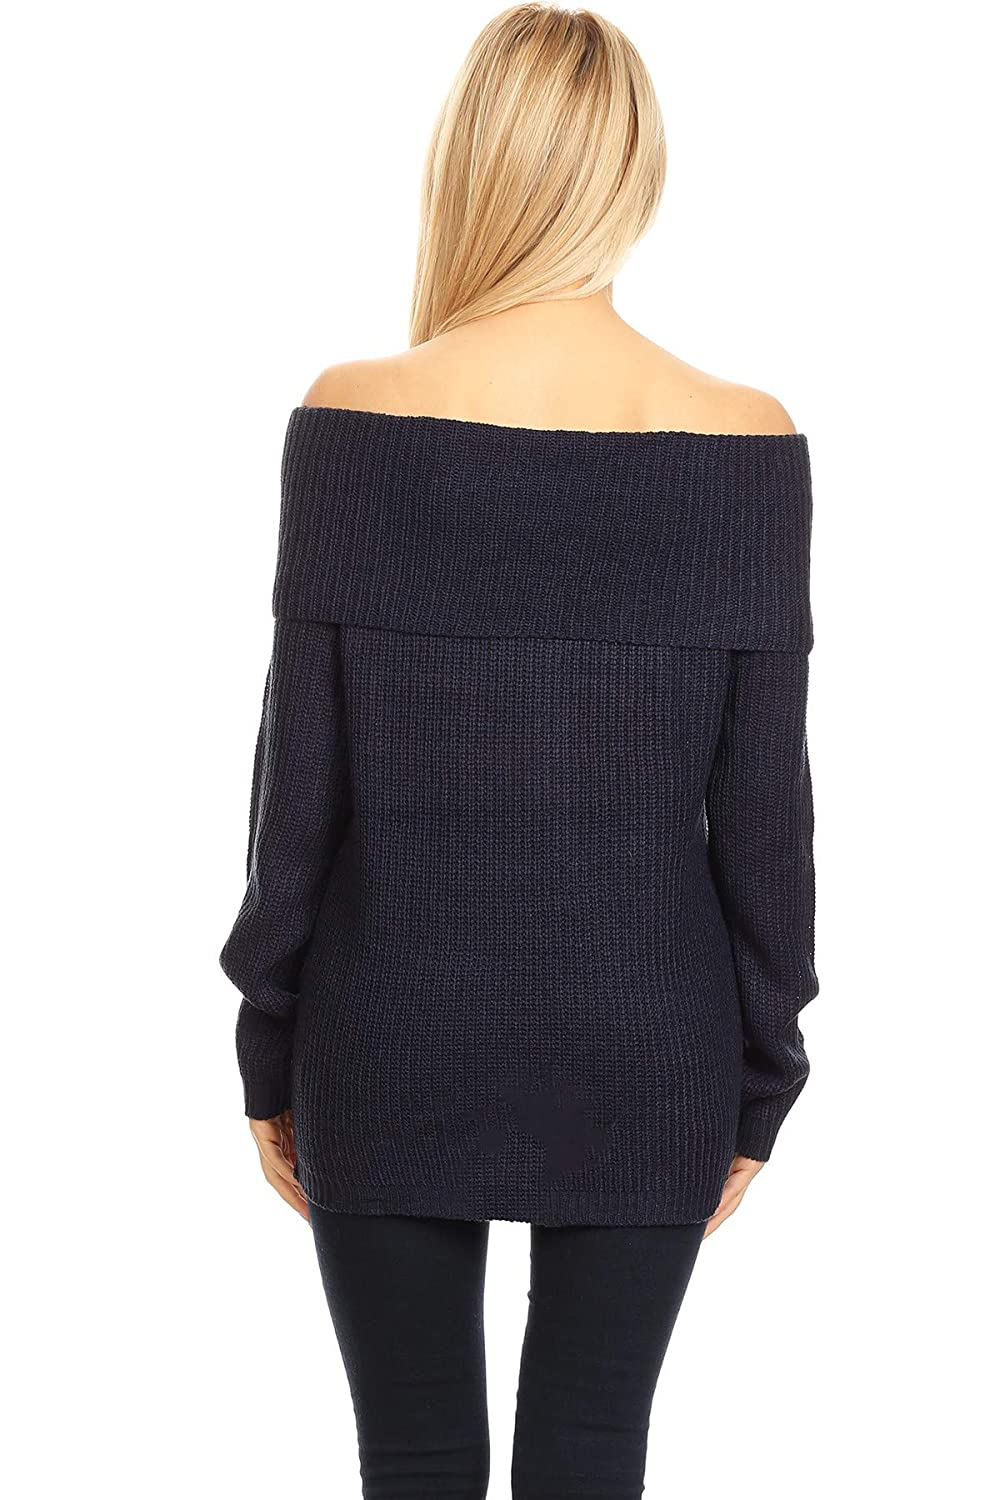 Women s Lace Up Fold Over Off Shoulder Sweater Top at Amazon Women s  Clothing store  58f5ae87a